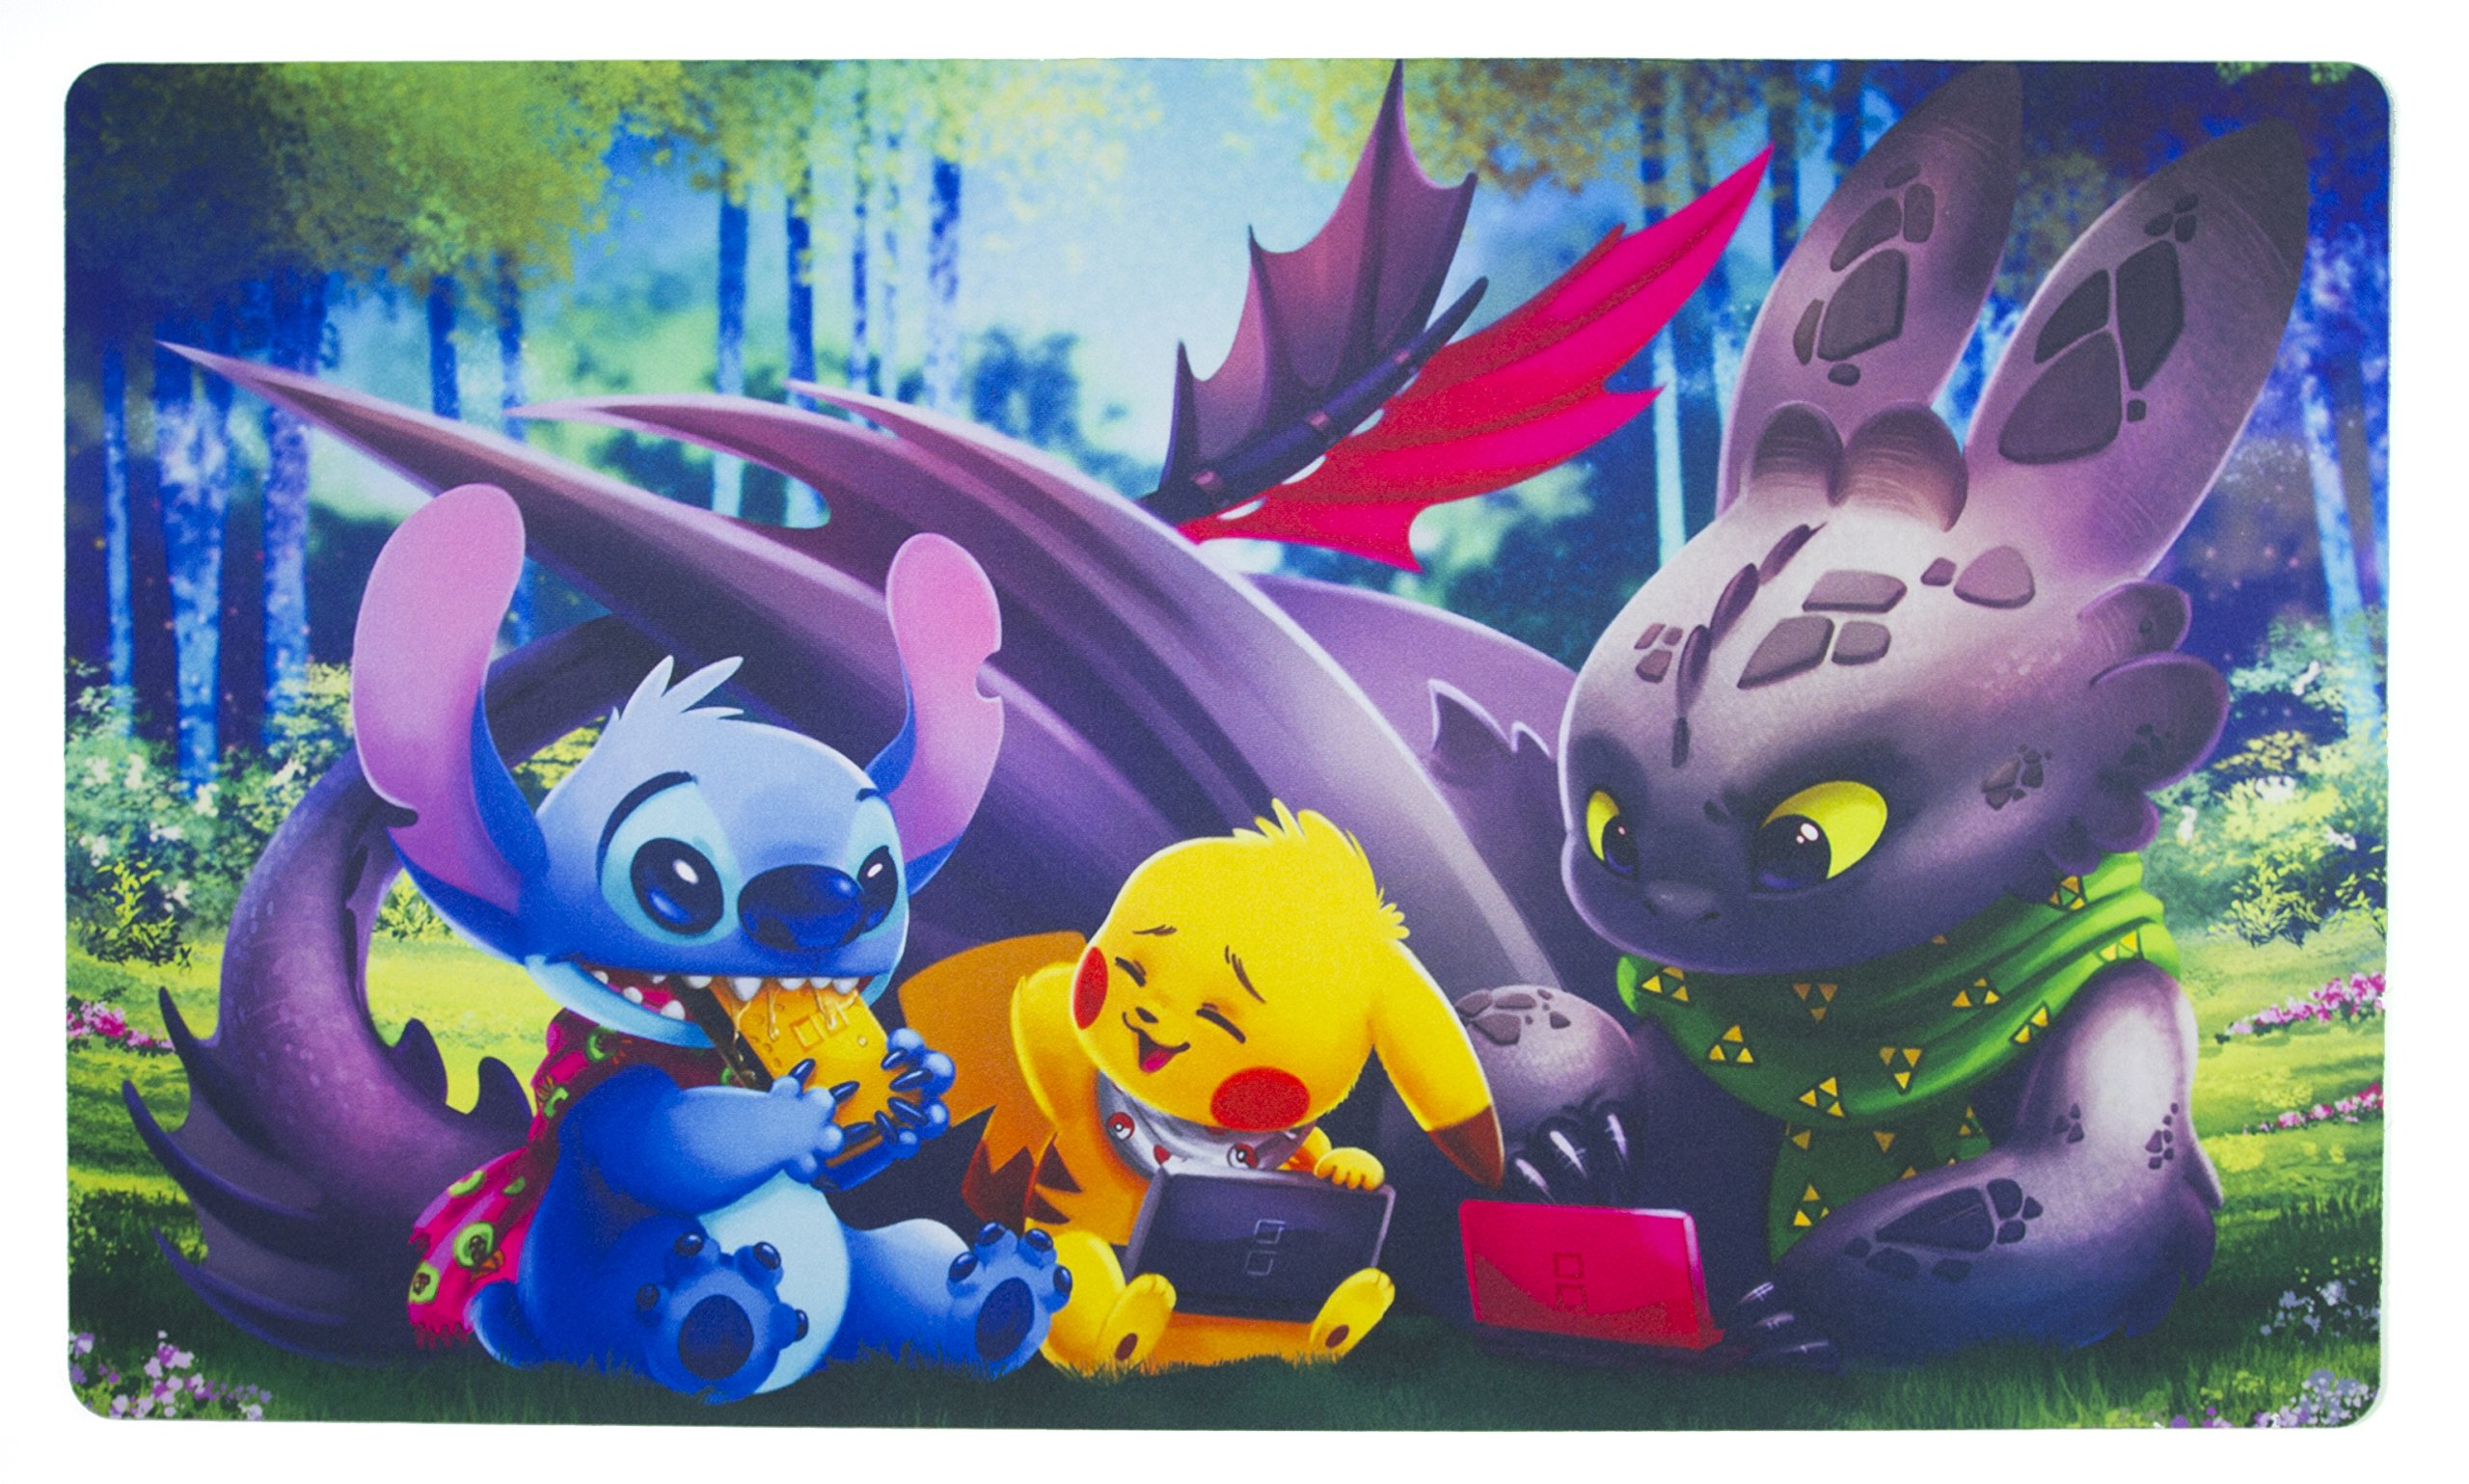 Inked Playmats Game On Playmat Inked Gaming Perfect for Pokemon - Pokémon TCG Game Mat